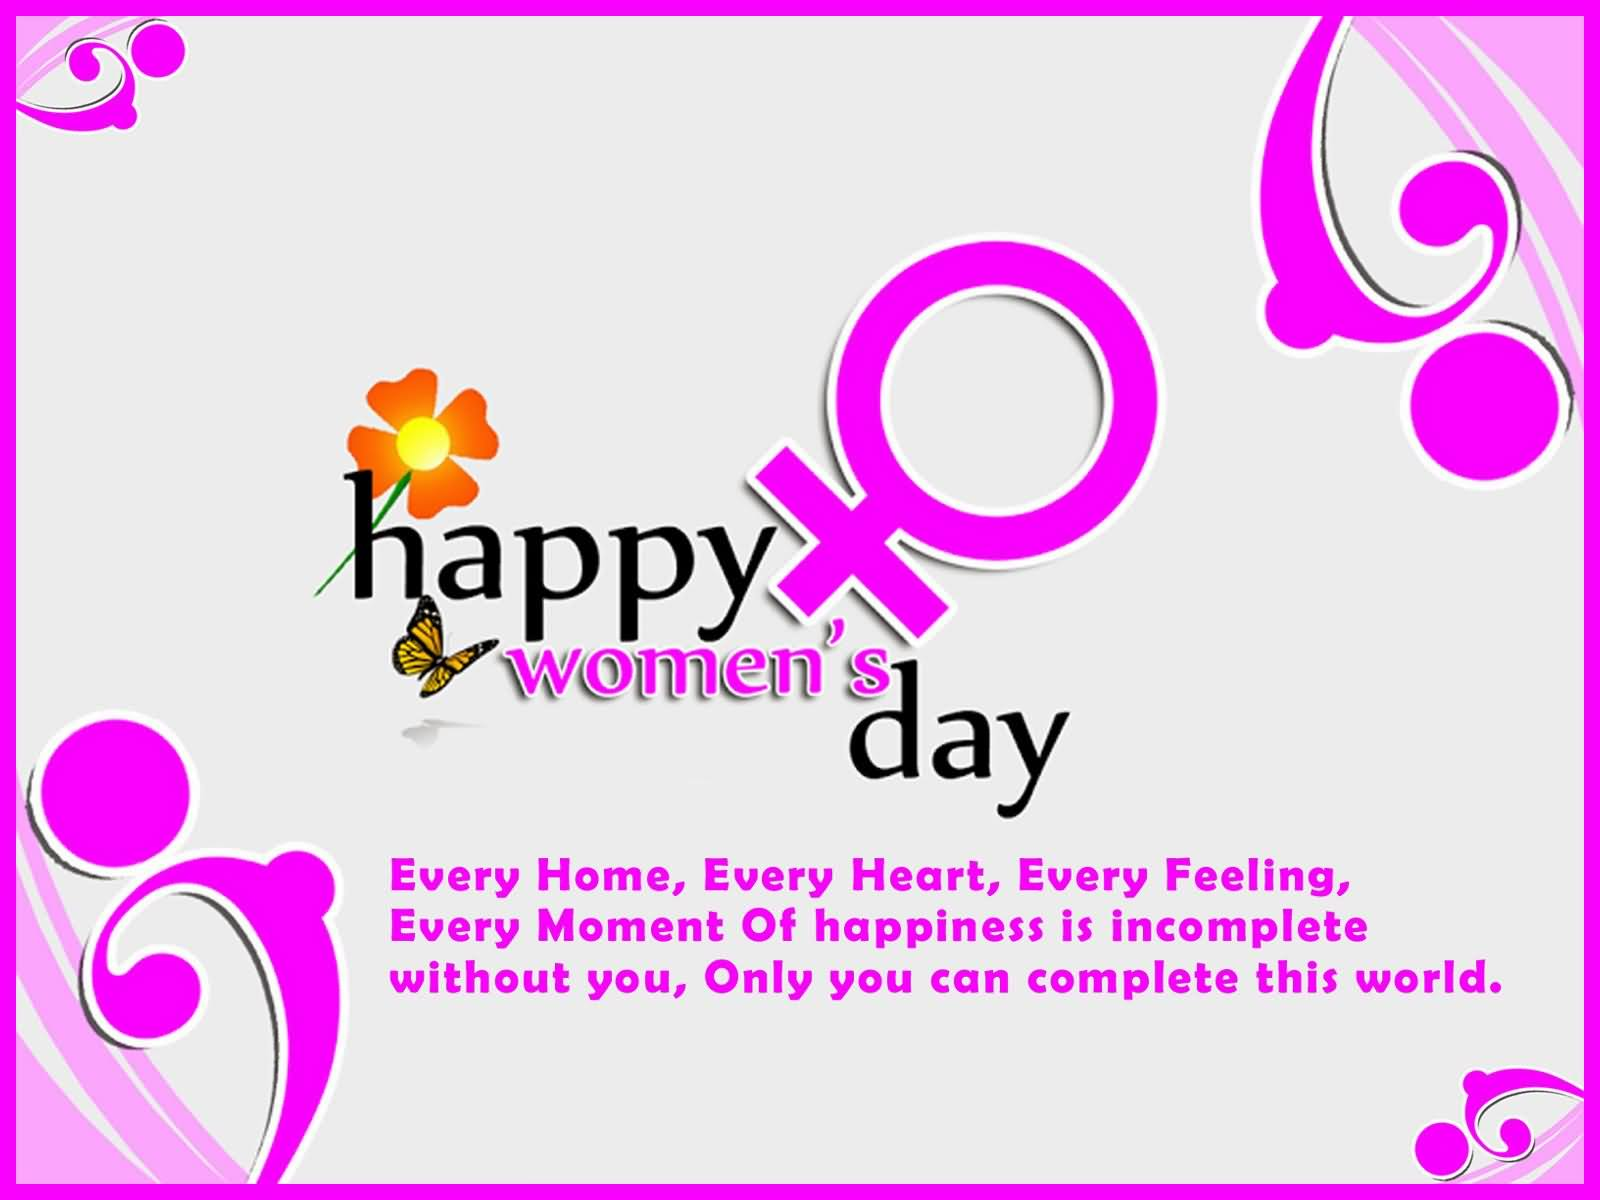 Happy Women's Day Every Home Every Heart Every Feeling